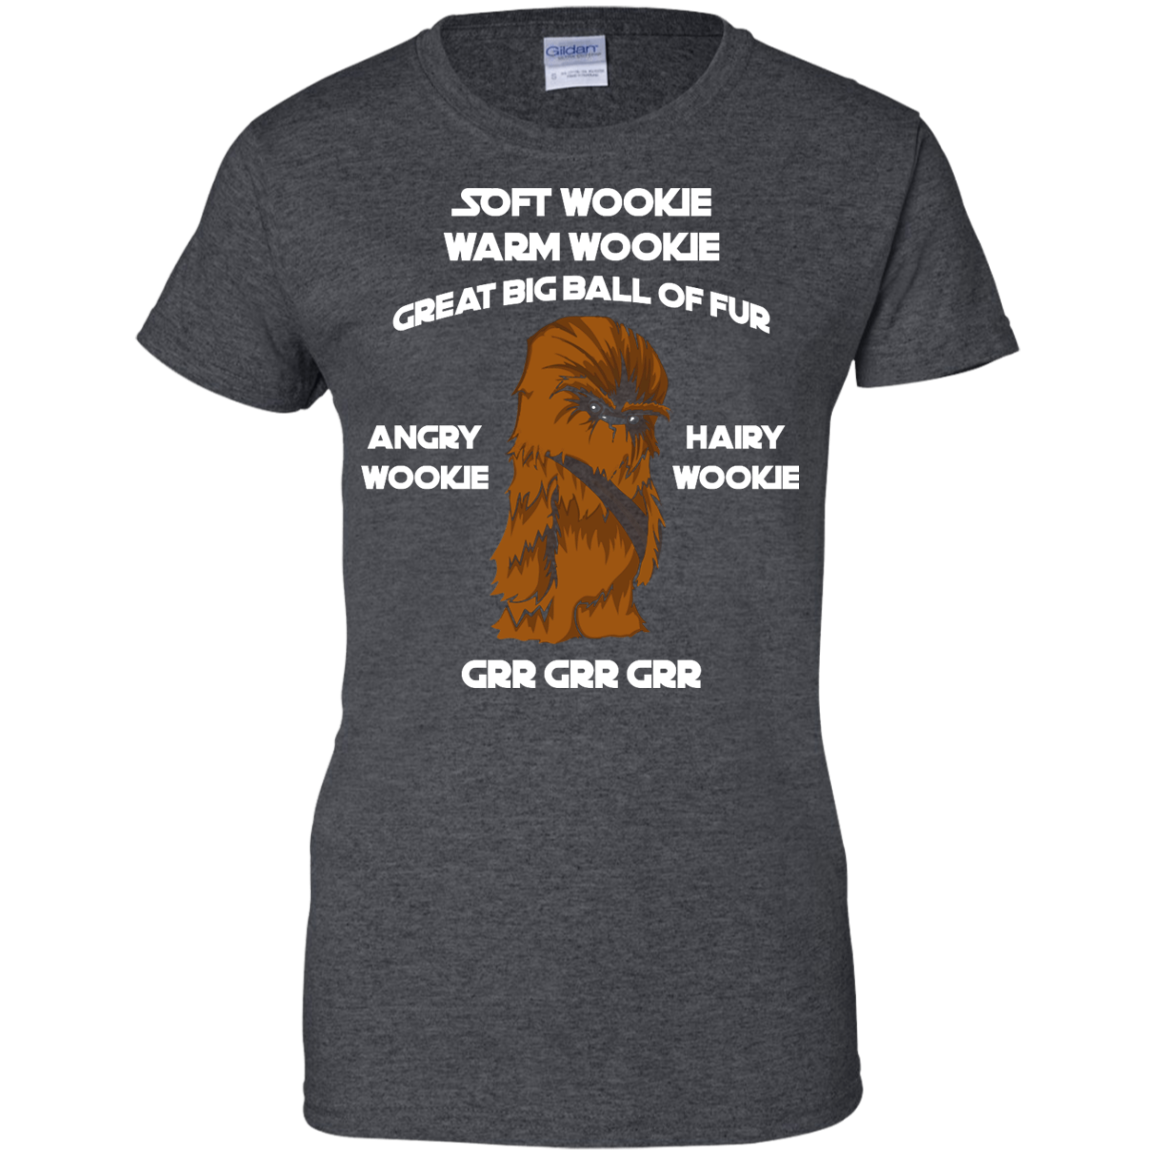 image 48px Star Wars: Soft Wookie Warm Wookie Great Big Ball Of Fur Angry Wookie Hairy Wookie T Shirts